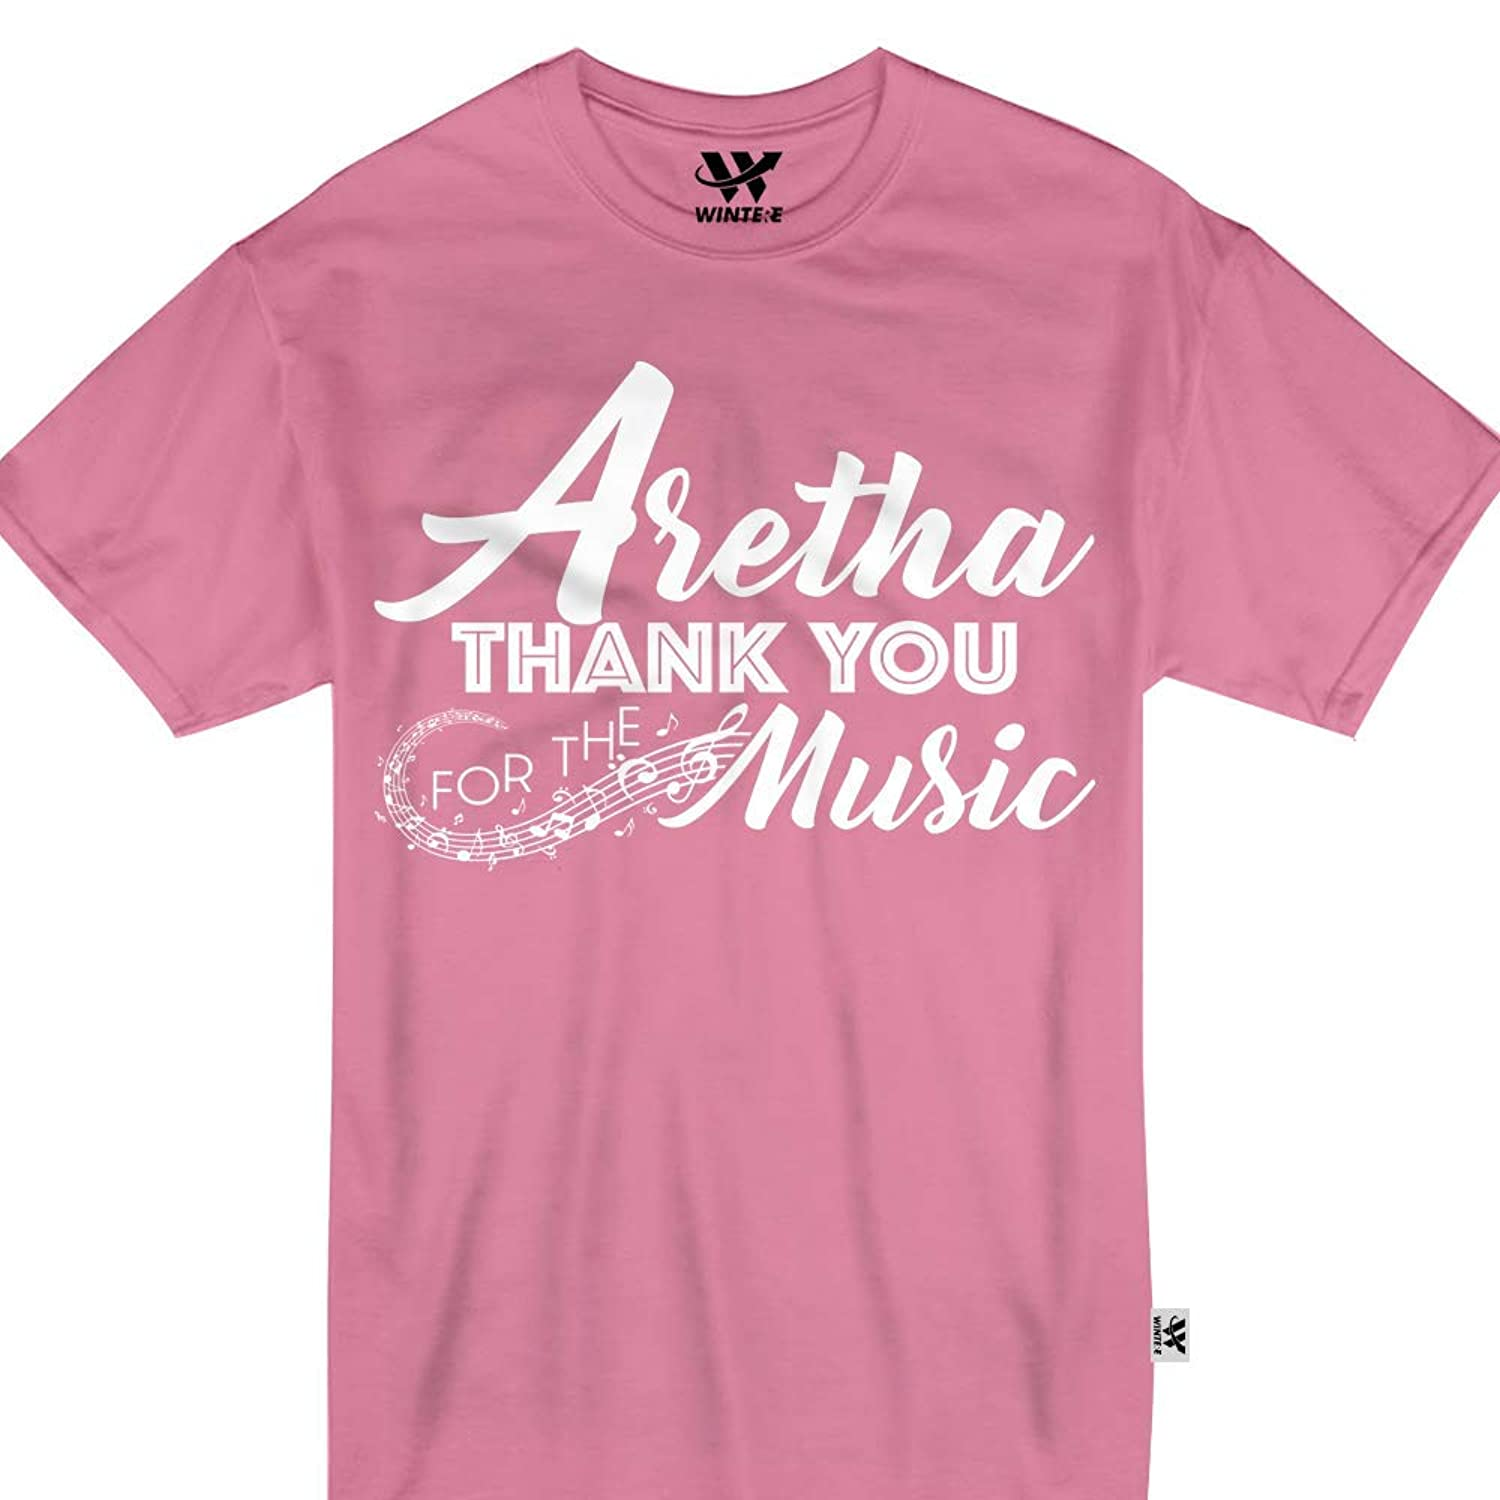 2d81a2d040 Franklin memorial t-shirt diva queen of soul music singer R&B pop gospel  jazz. We love legend, be with you Aretha. Respect the memphis diva. Peace  love hope